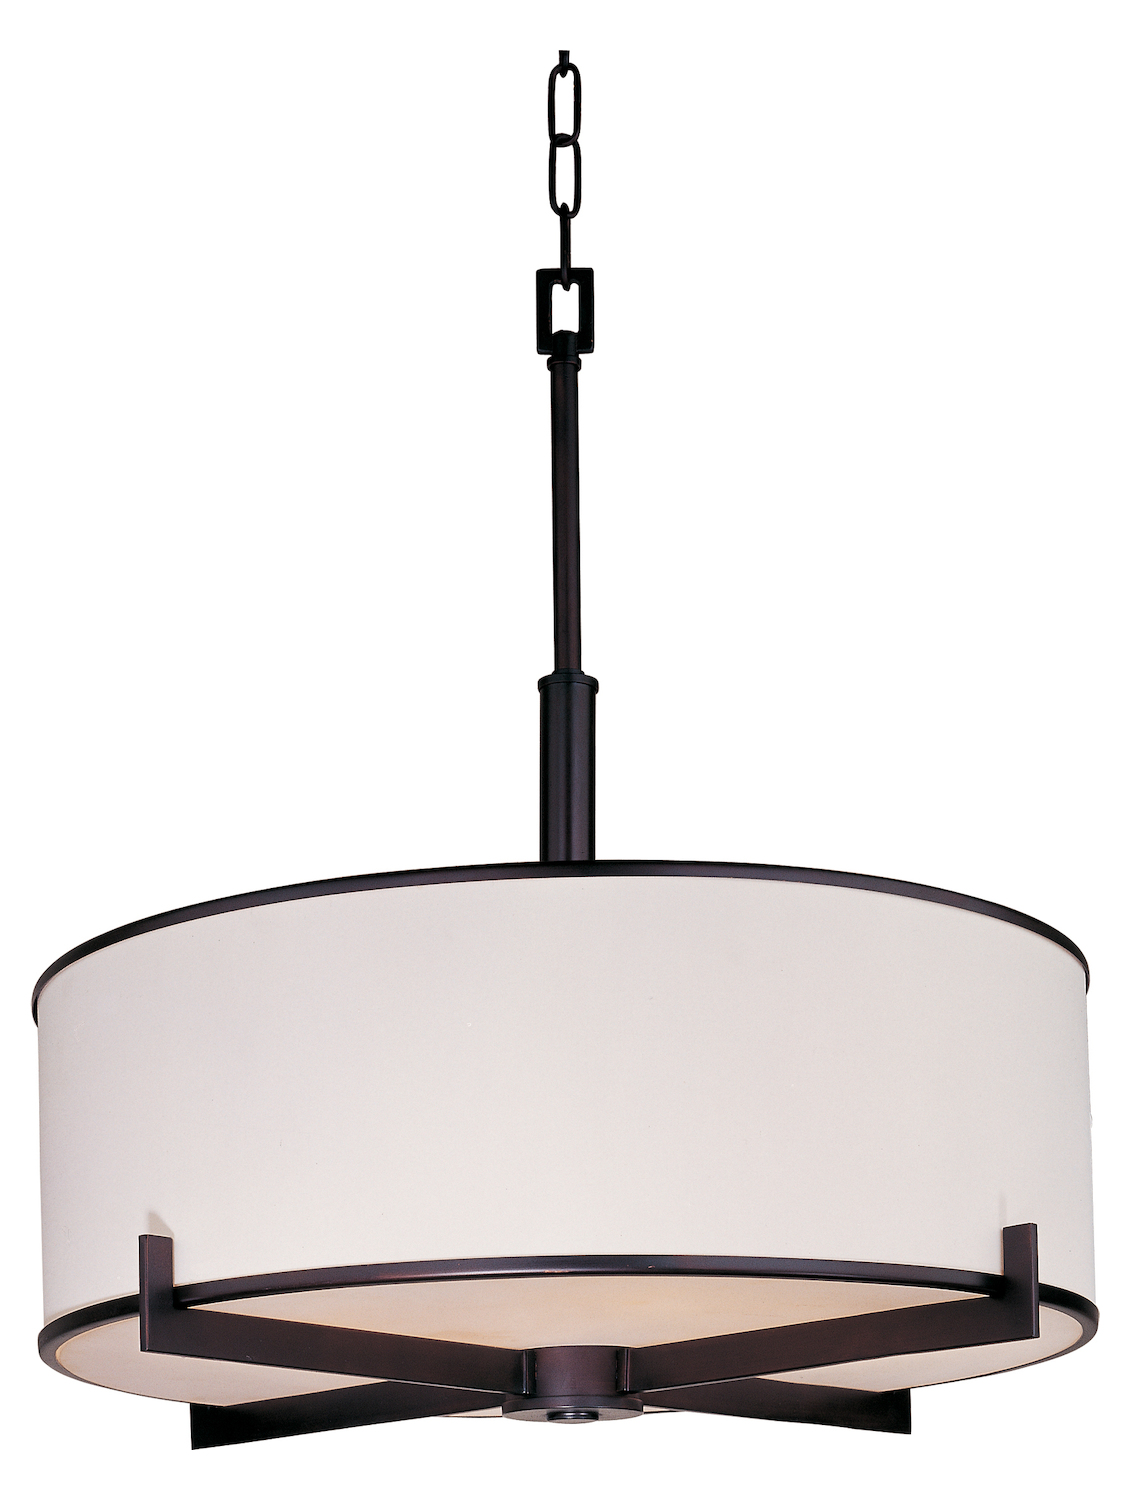 Foyer Lighting Oil Rubbed Bronze : Maxim four light oil rubbed bronze foyer hall pendant